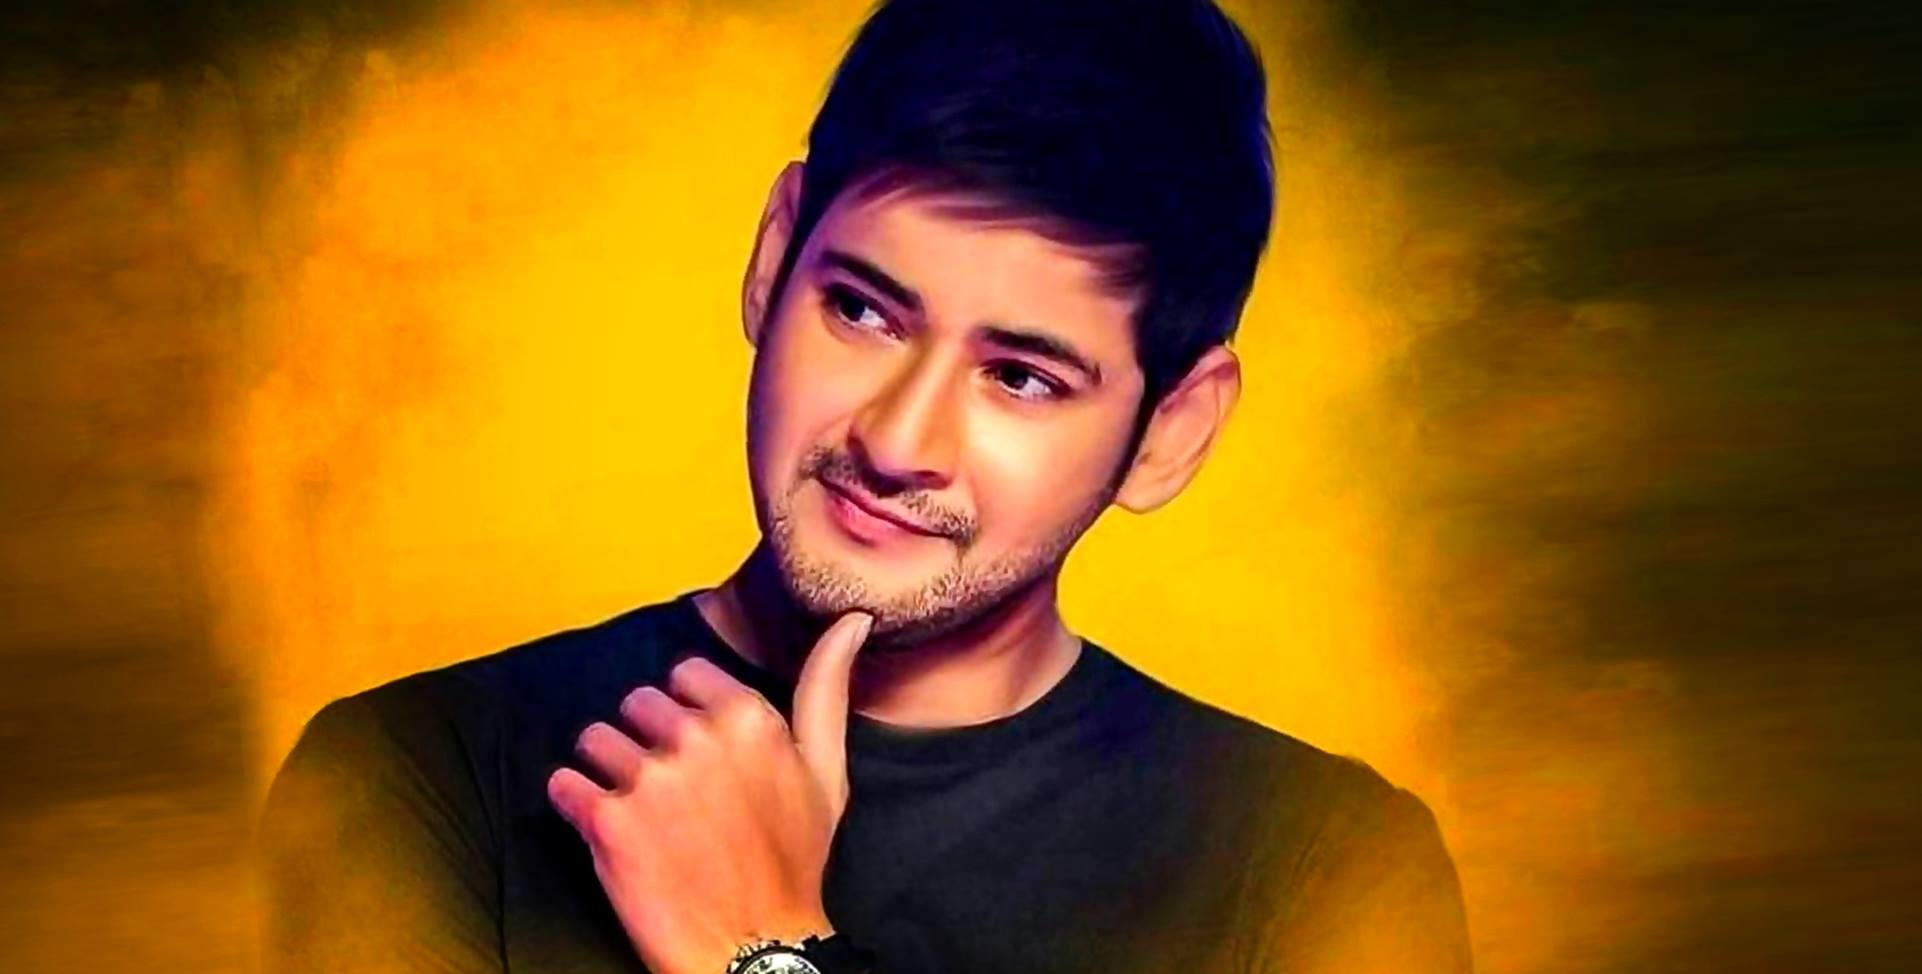 mahesh-babu-to-sport-a-new-look-in-25th-movie-2